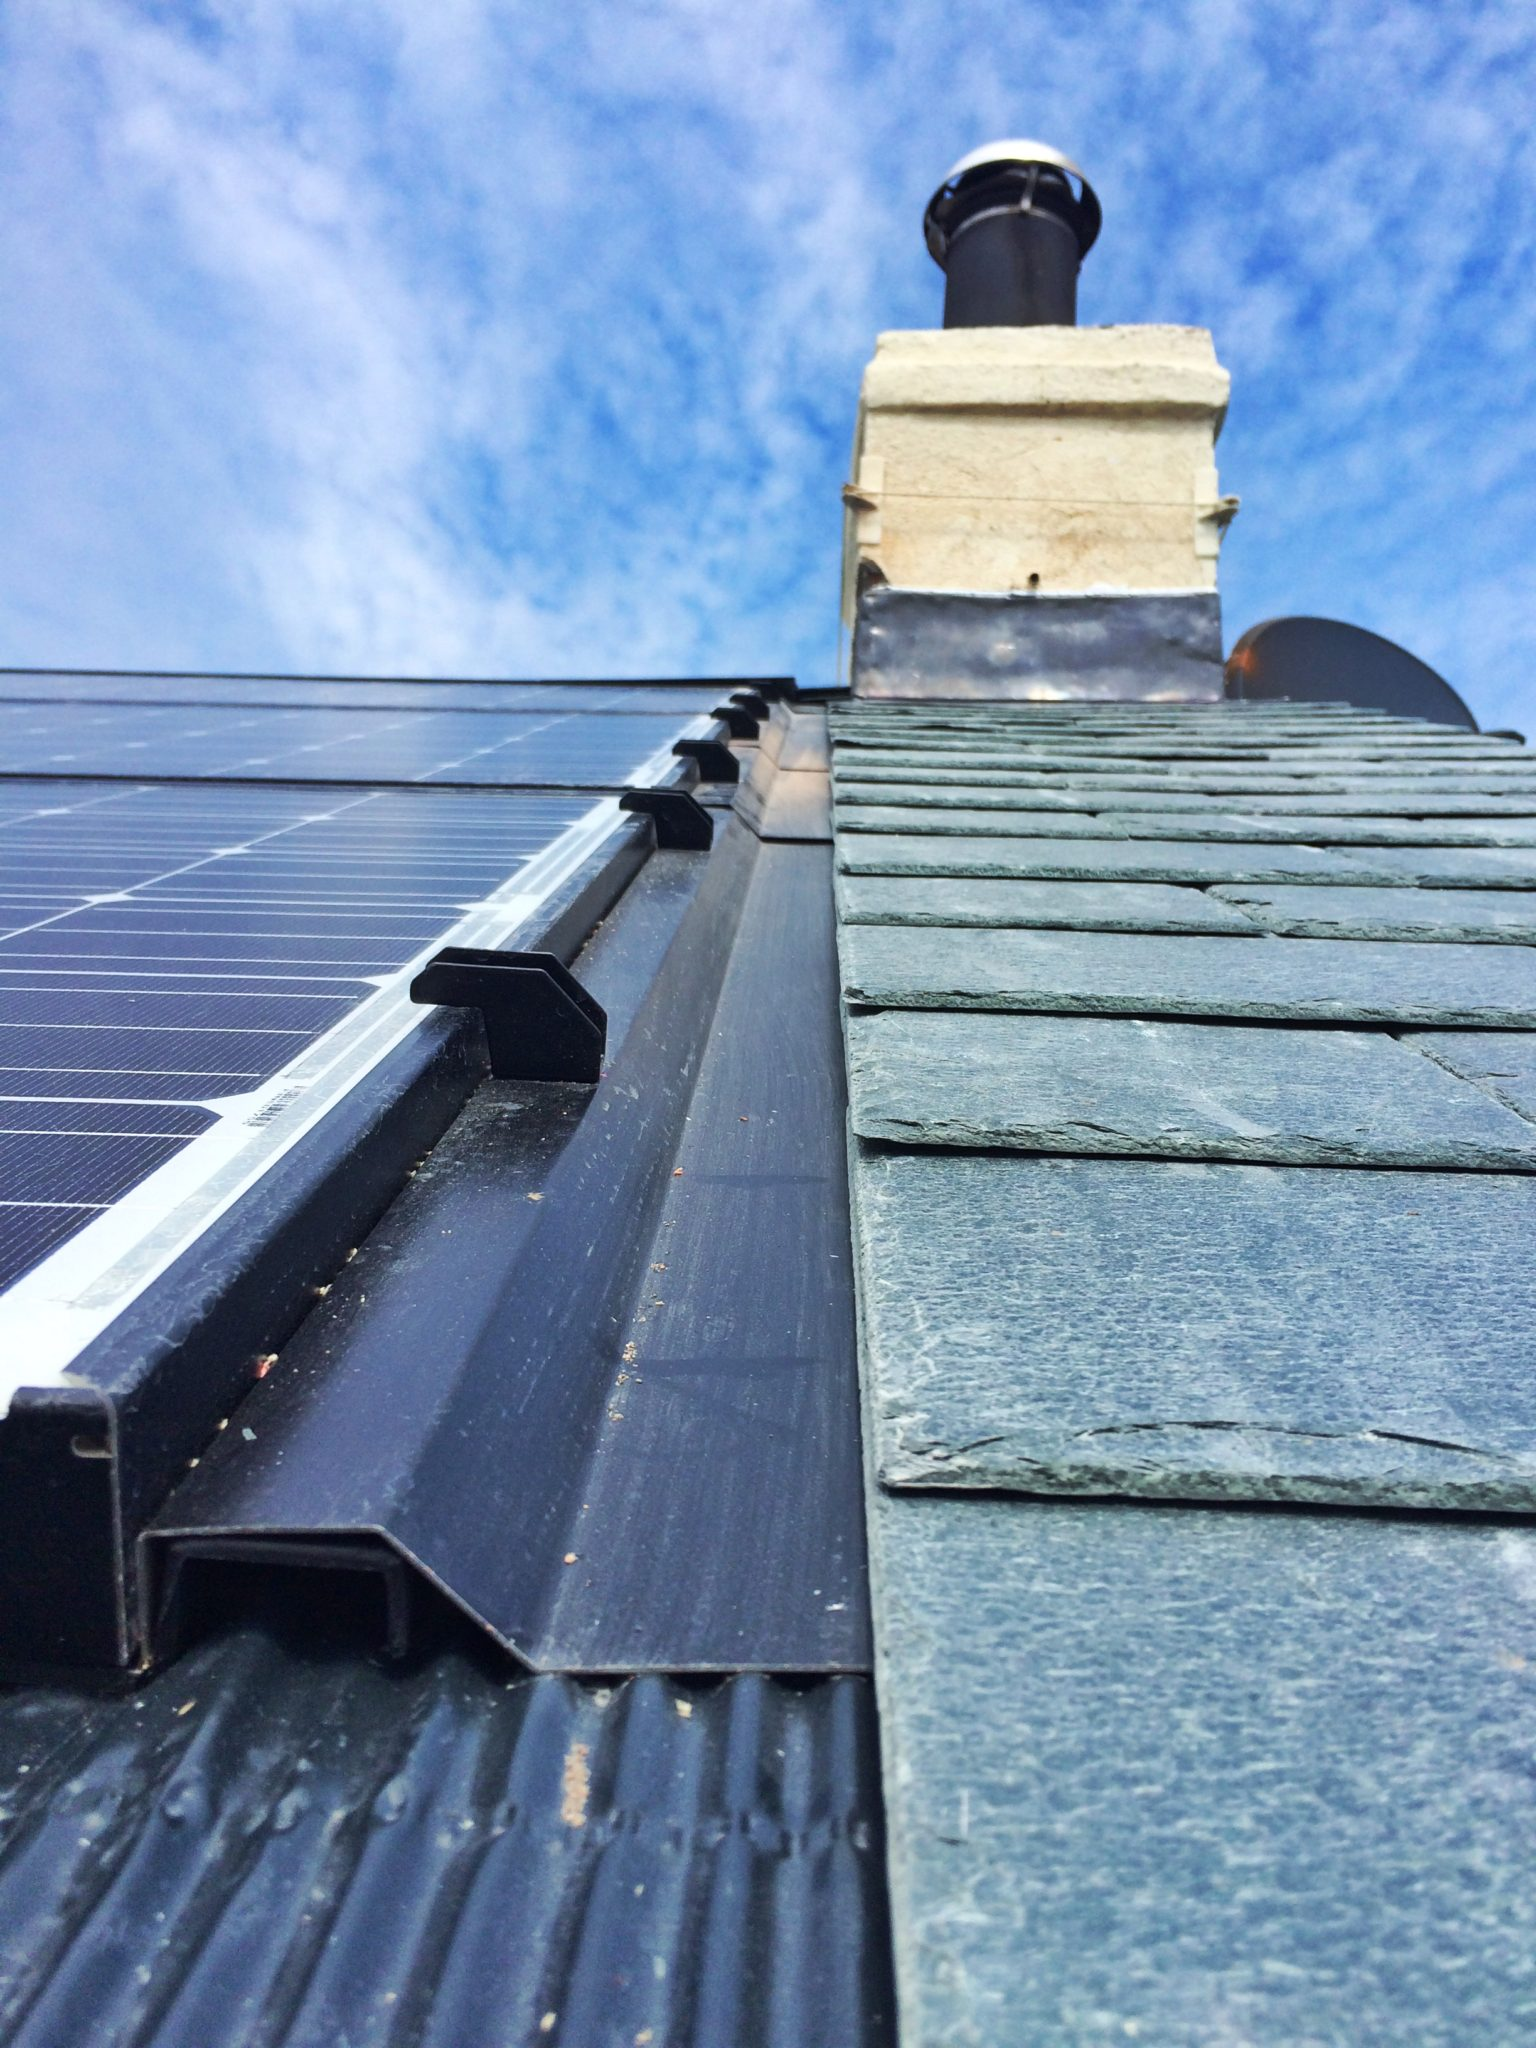 A GreenGenUK renewable energy solution, installed in Cornwall.